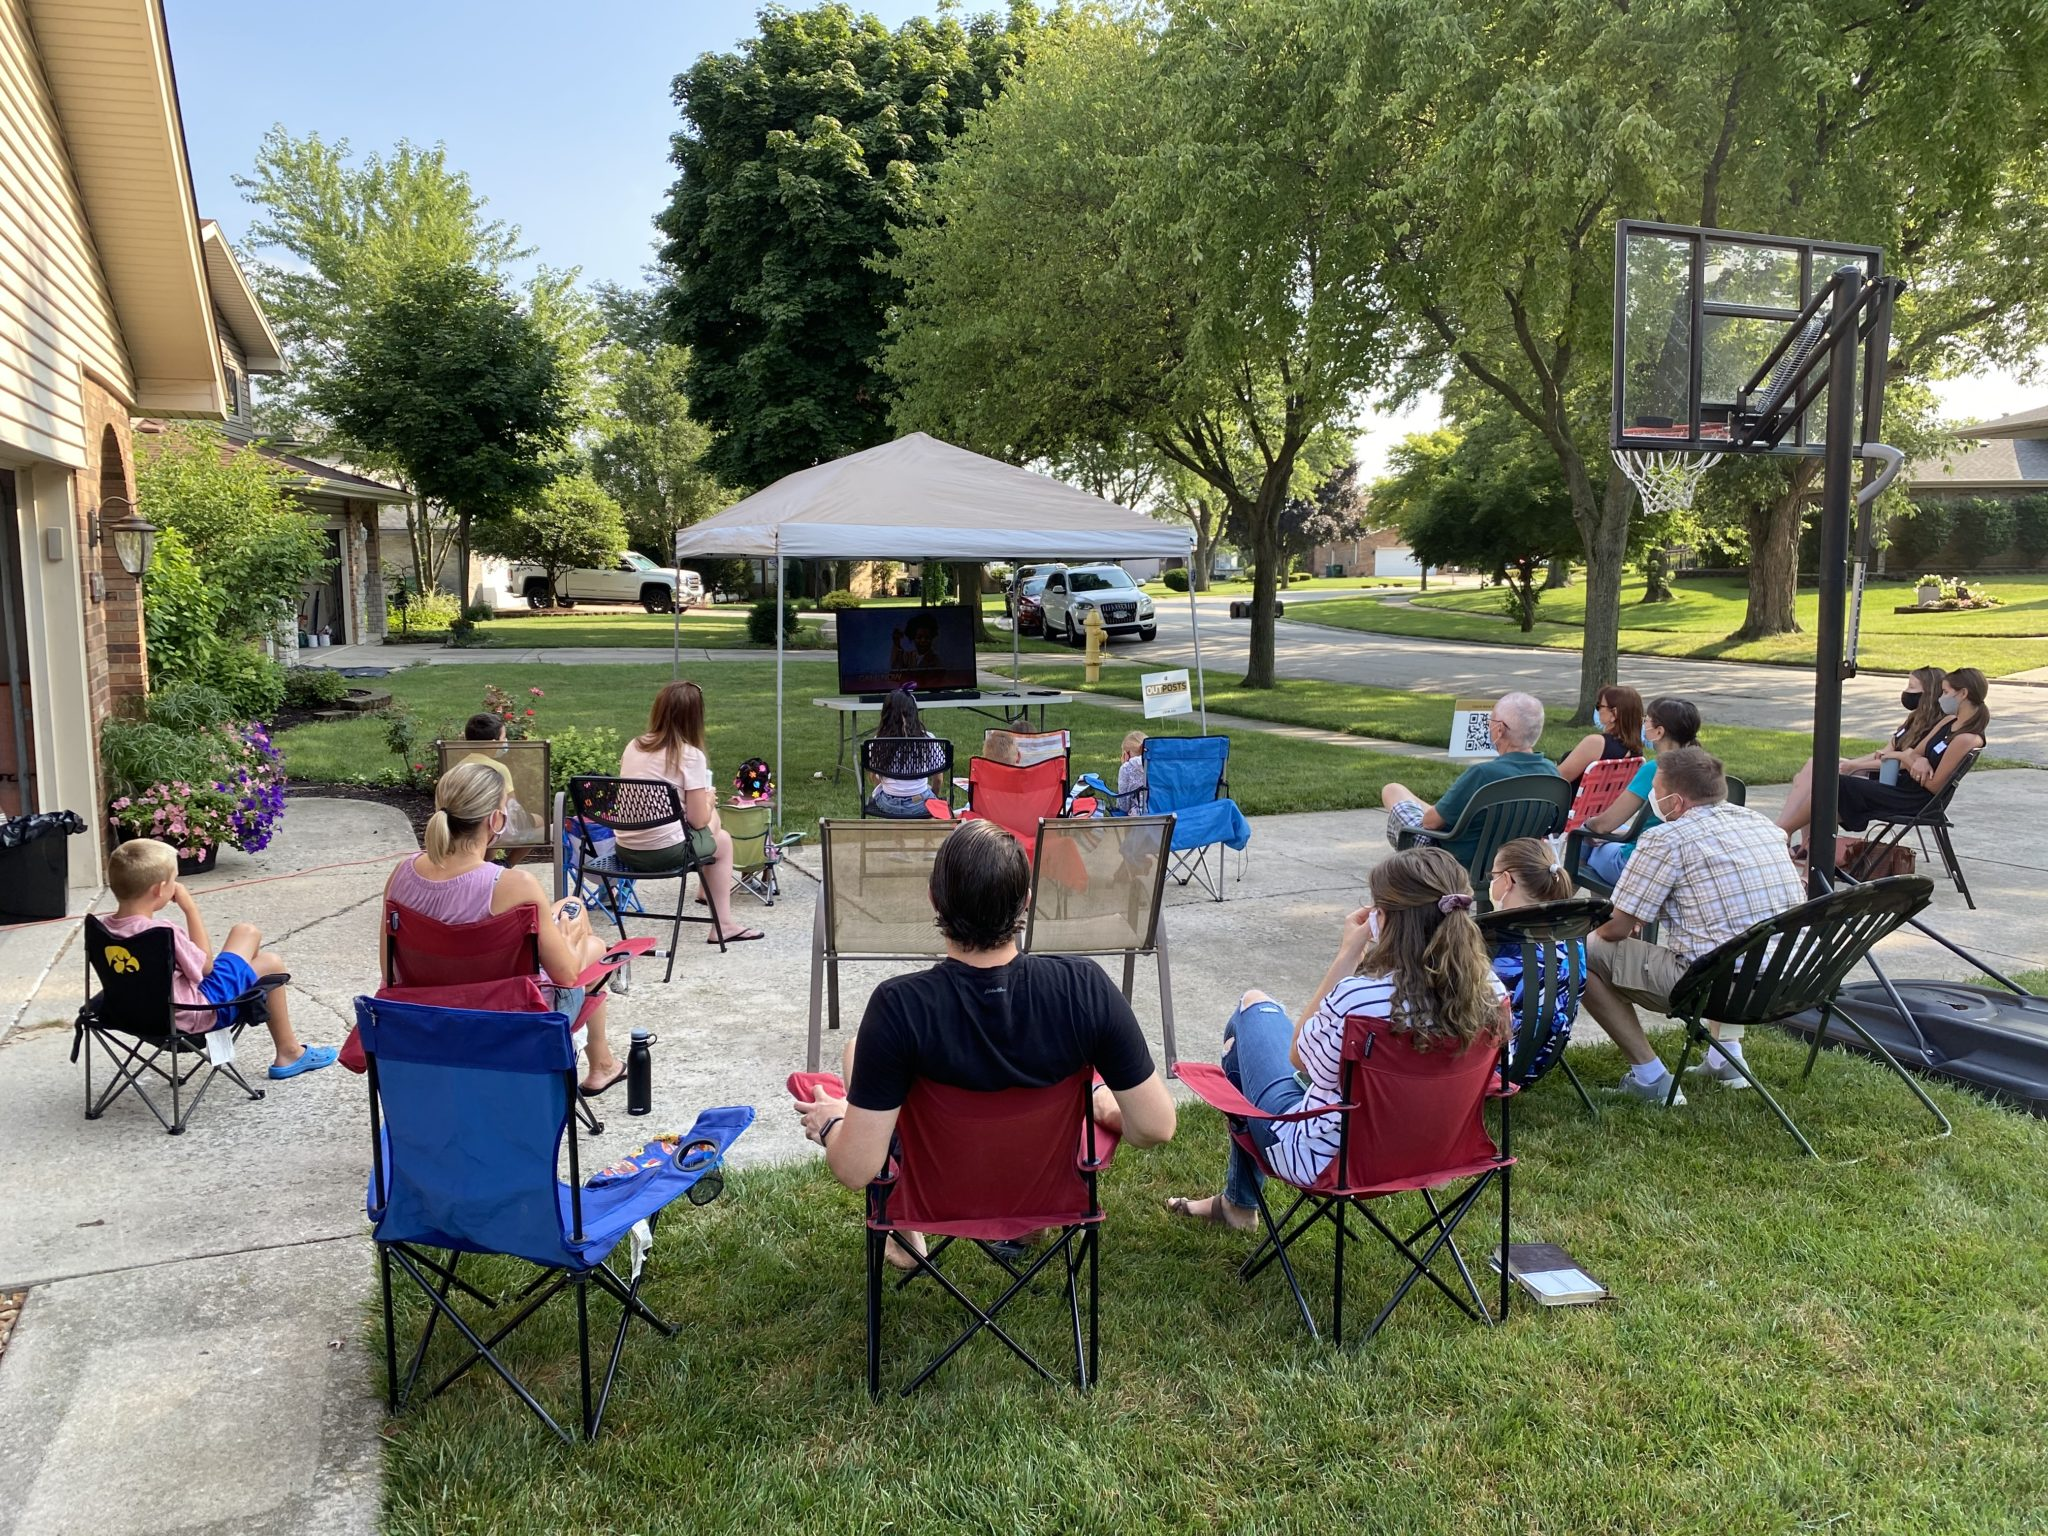 People sit in lawn chairs on a driveway while watching and discussing a church service together.